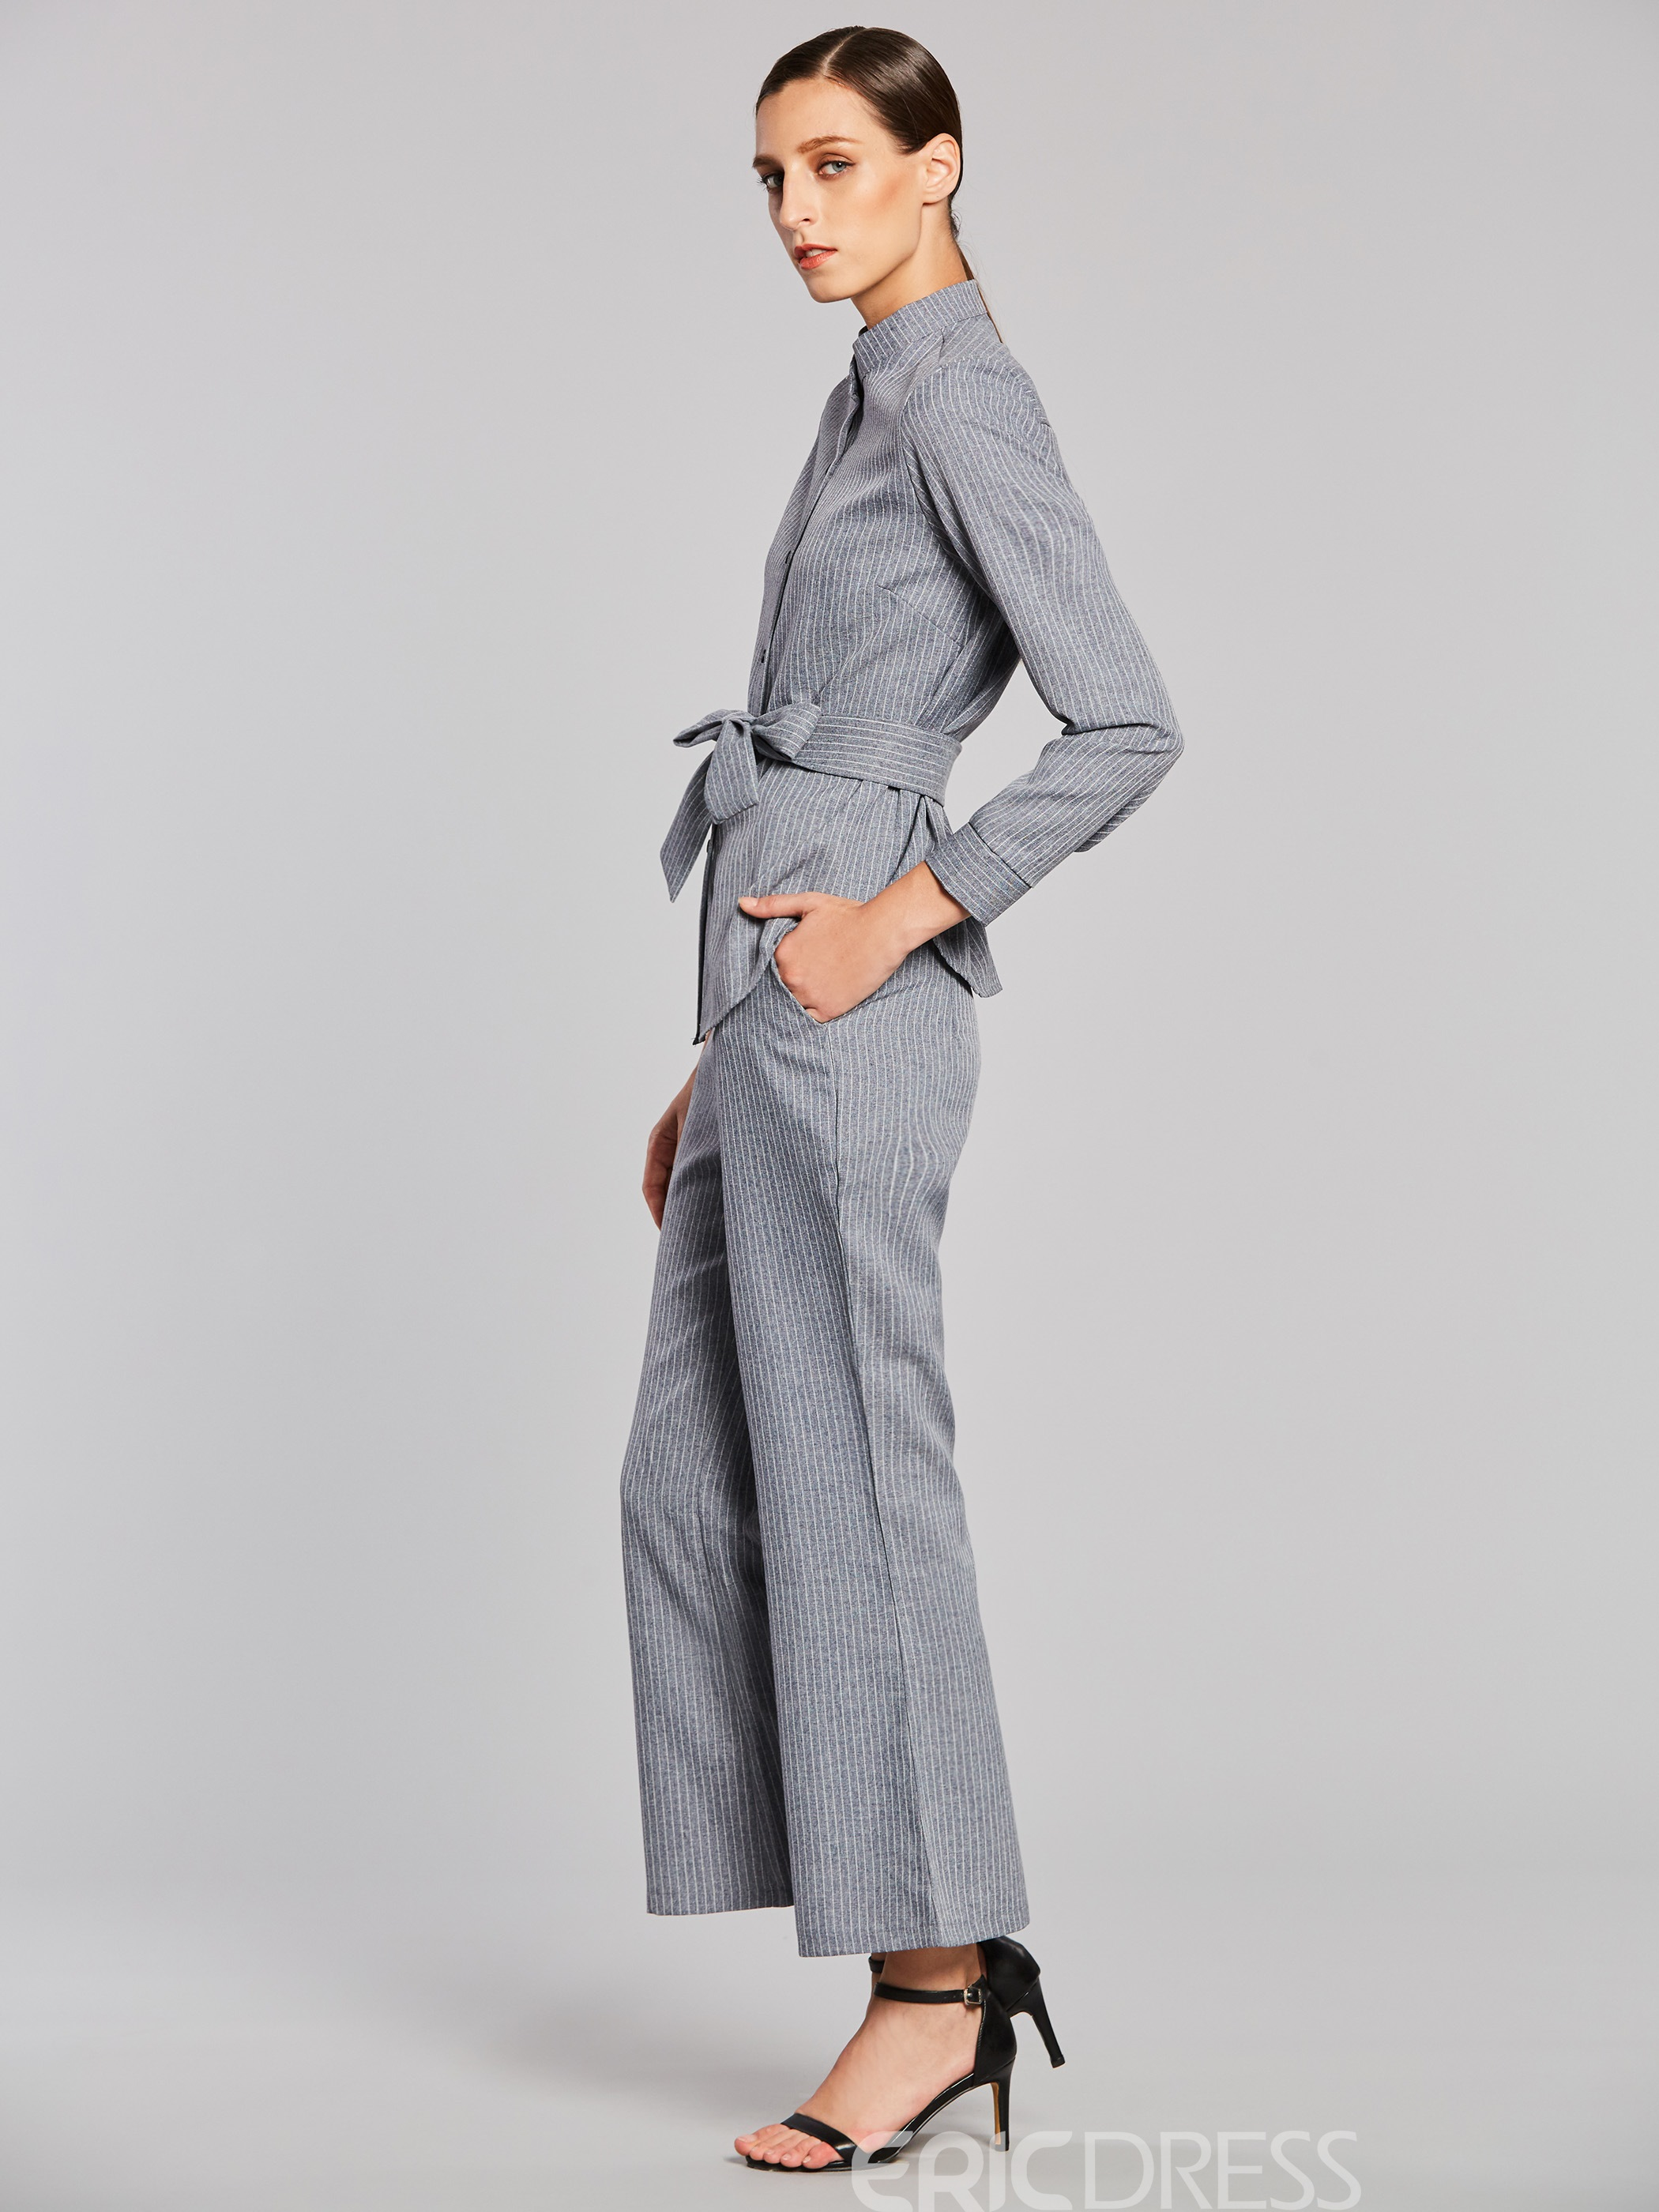 Ericdress Stripe Single-Breasted Lace-Up Shirt and Wide Leg Pants Women's Elegant Suit